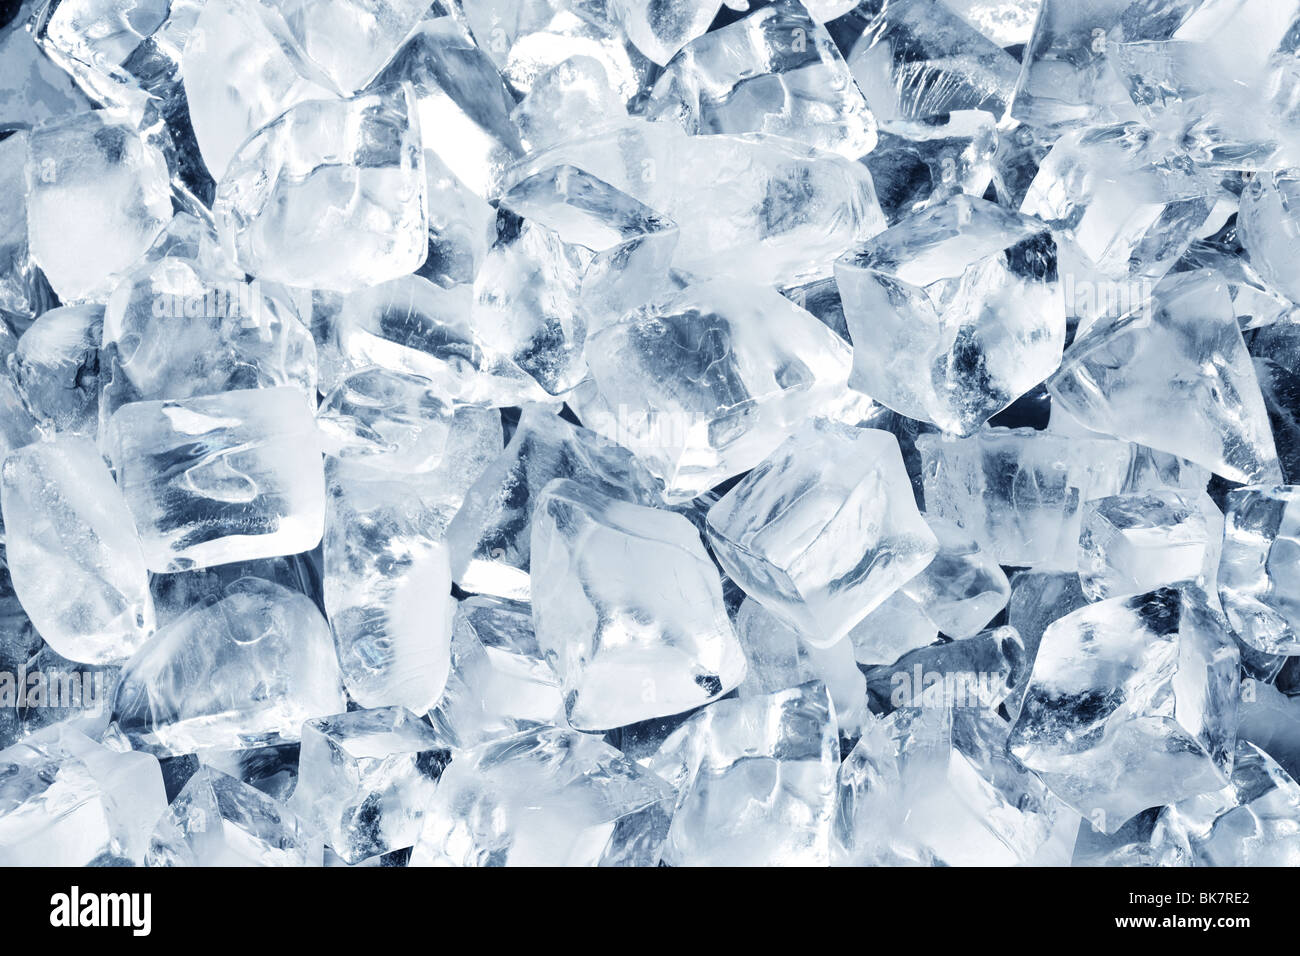 Background in the form of ice cubes - Stock Image